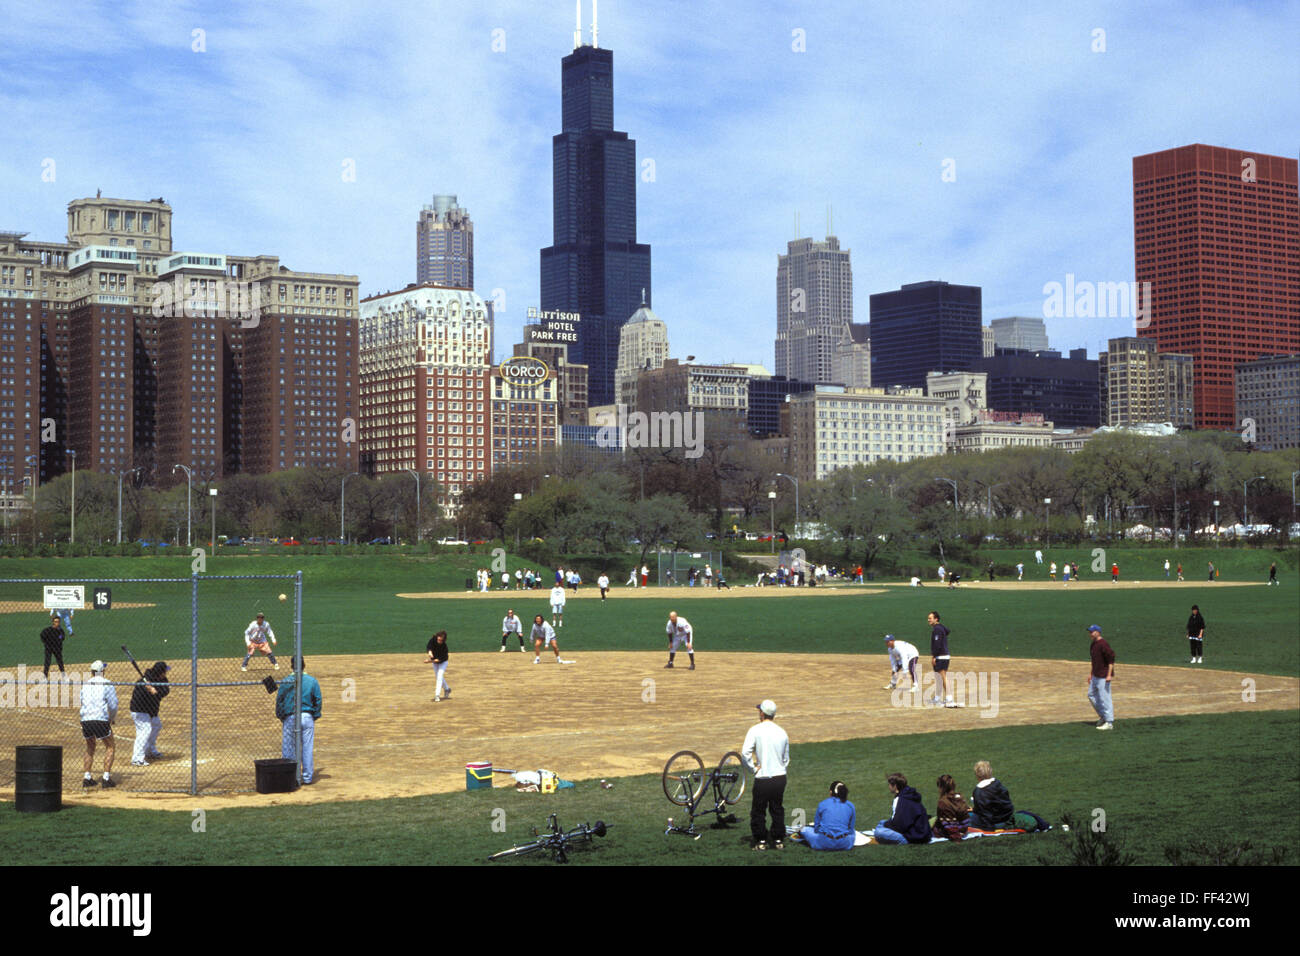 USA, United States of America, Chicago, the Grant Park and buildings at the Columbus Drive, behind the Sears Tower. - Stock Image